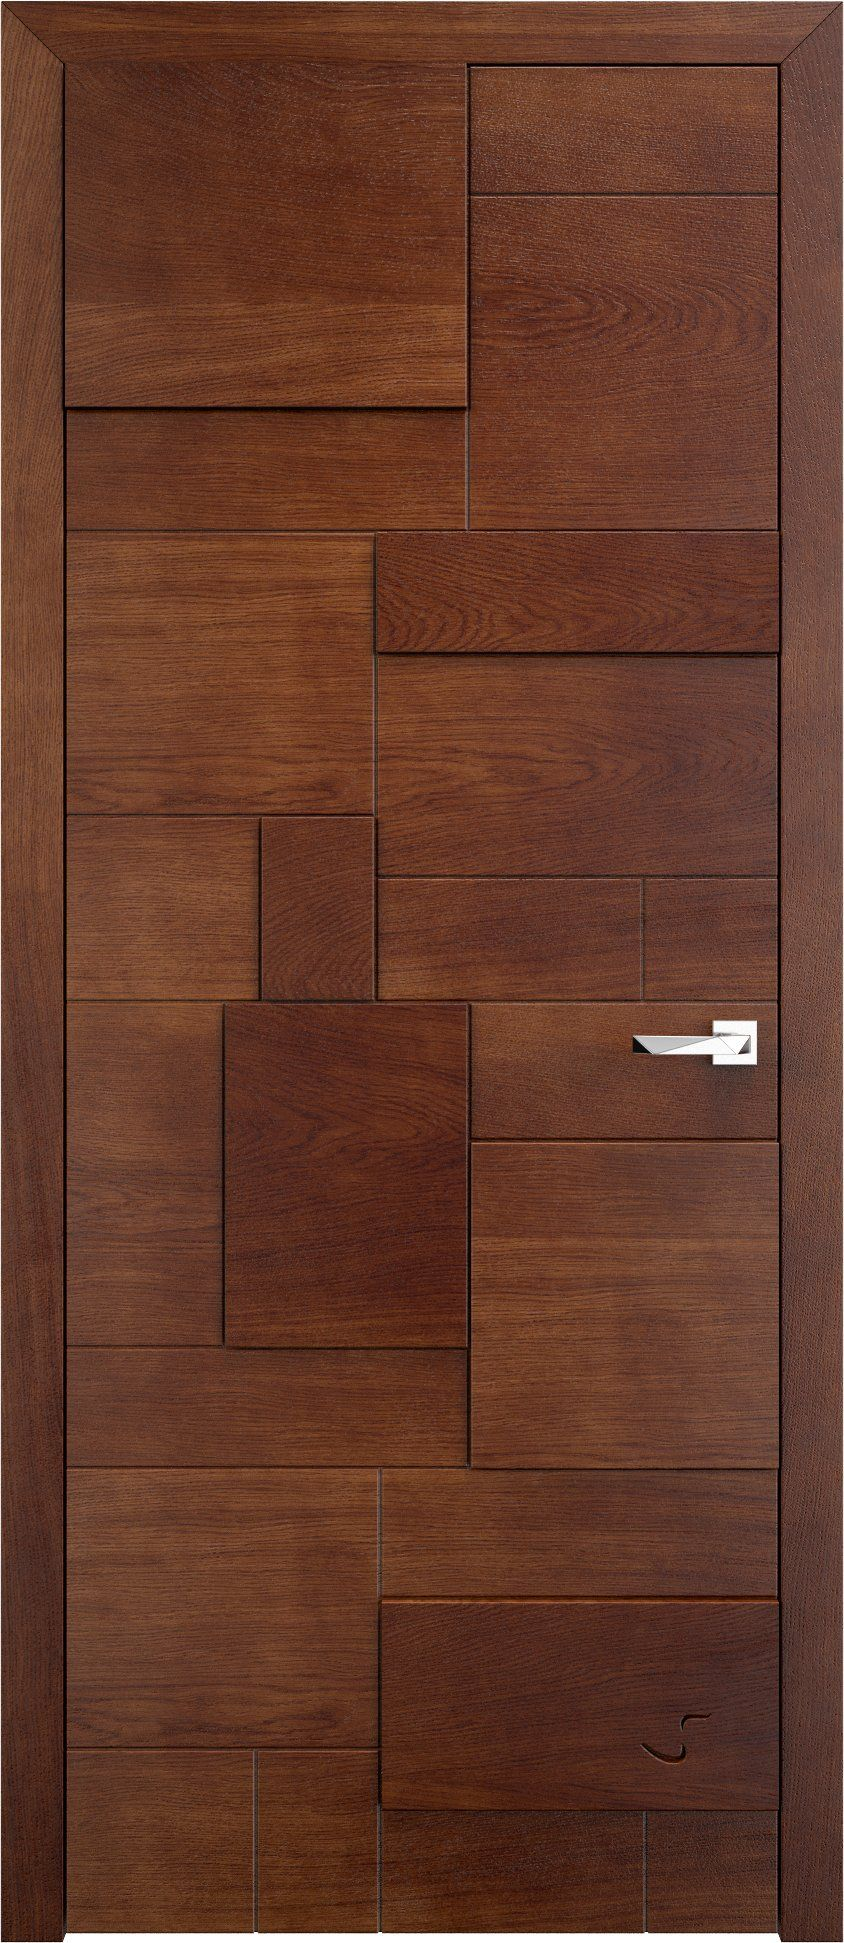 Dorian  Interior Barn Doors  Doors, Modern wood doors, Main door design